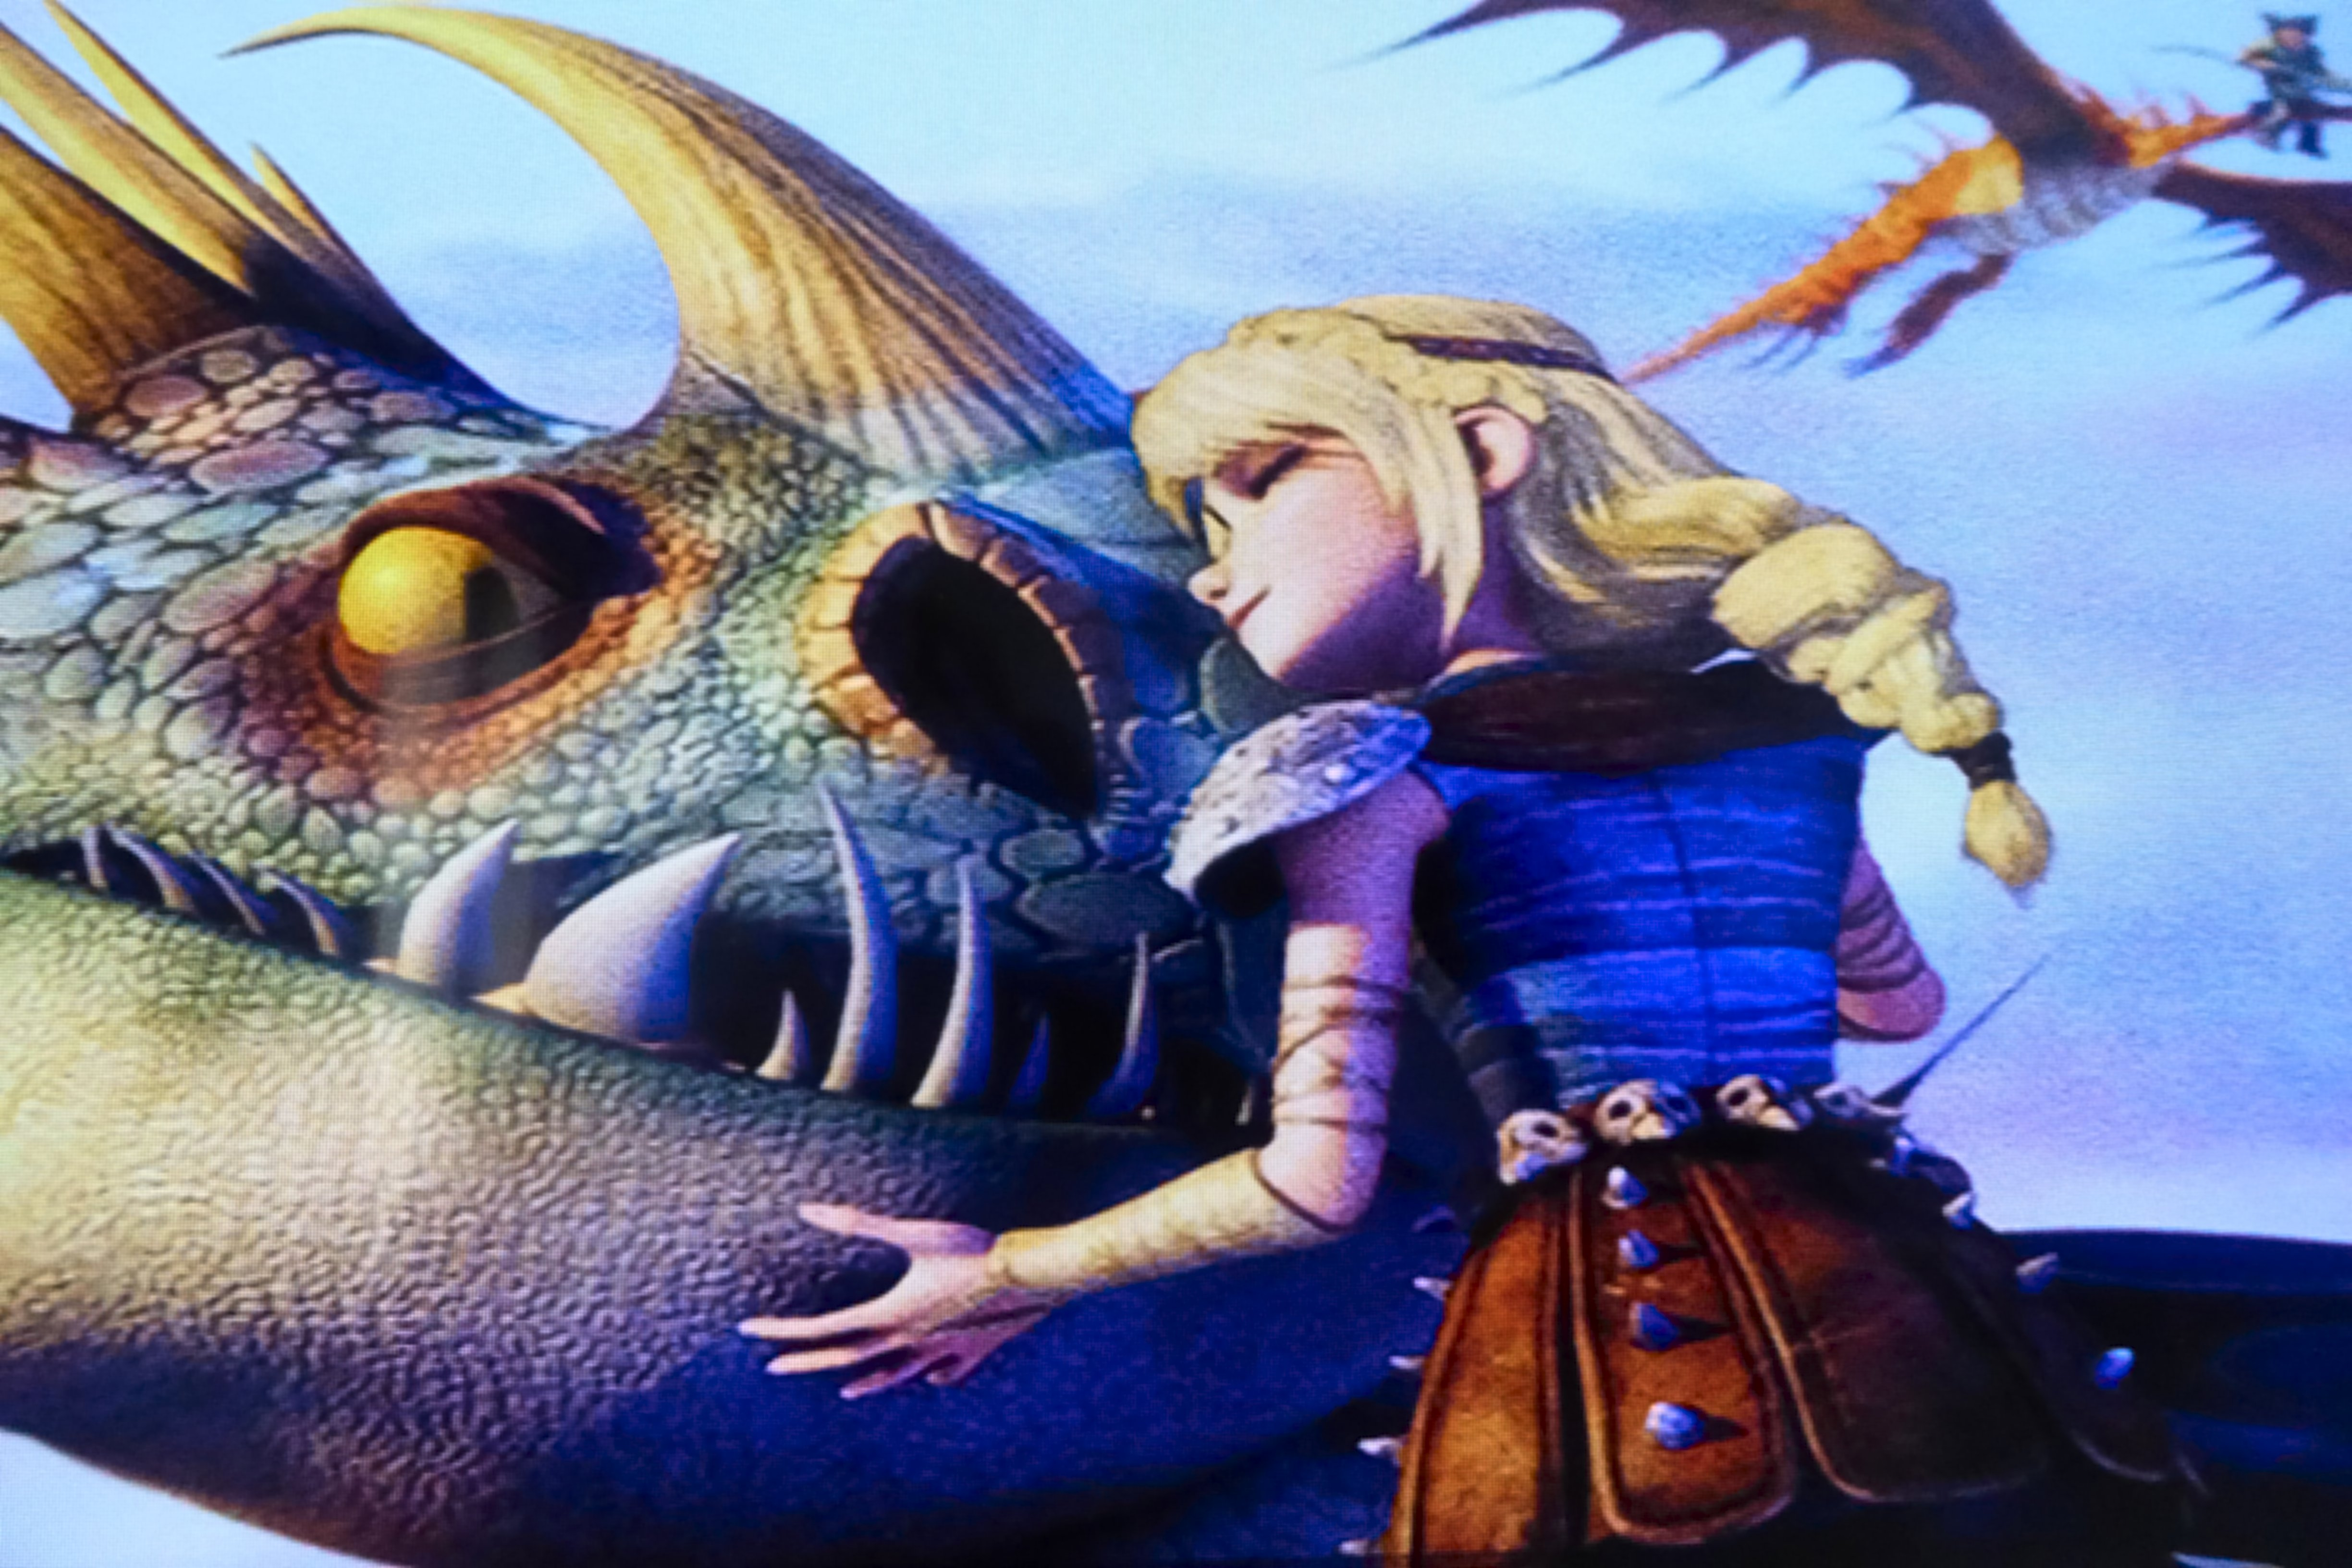 Angry dragon online sex games